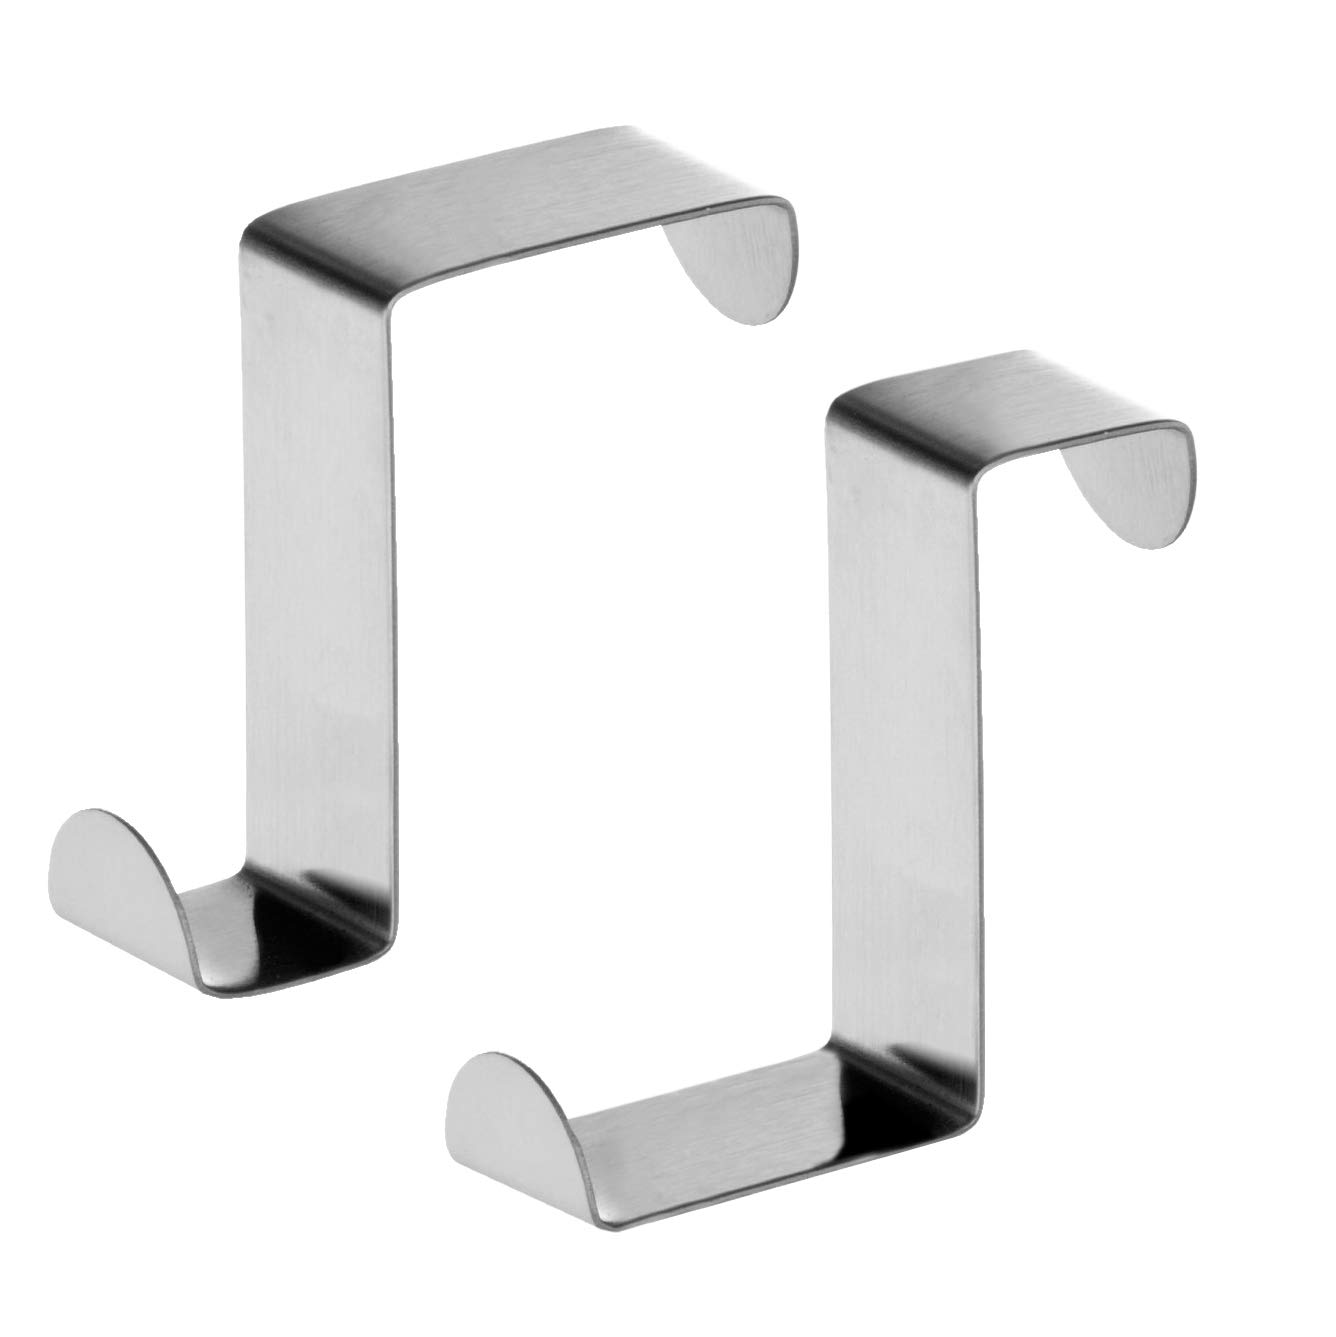 Tatkraft Seger Over the Door Hooks Reversible Z Hooks for Over the Door or Cupboard Door Hold up to 11Lbs 5 kg Towel Holders Set of 2 Stainless Steel